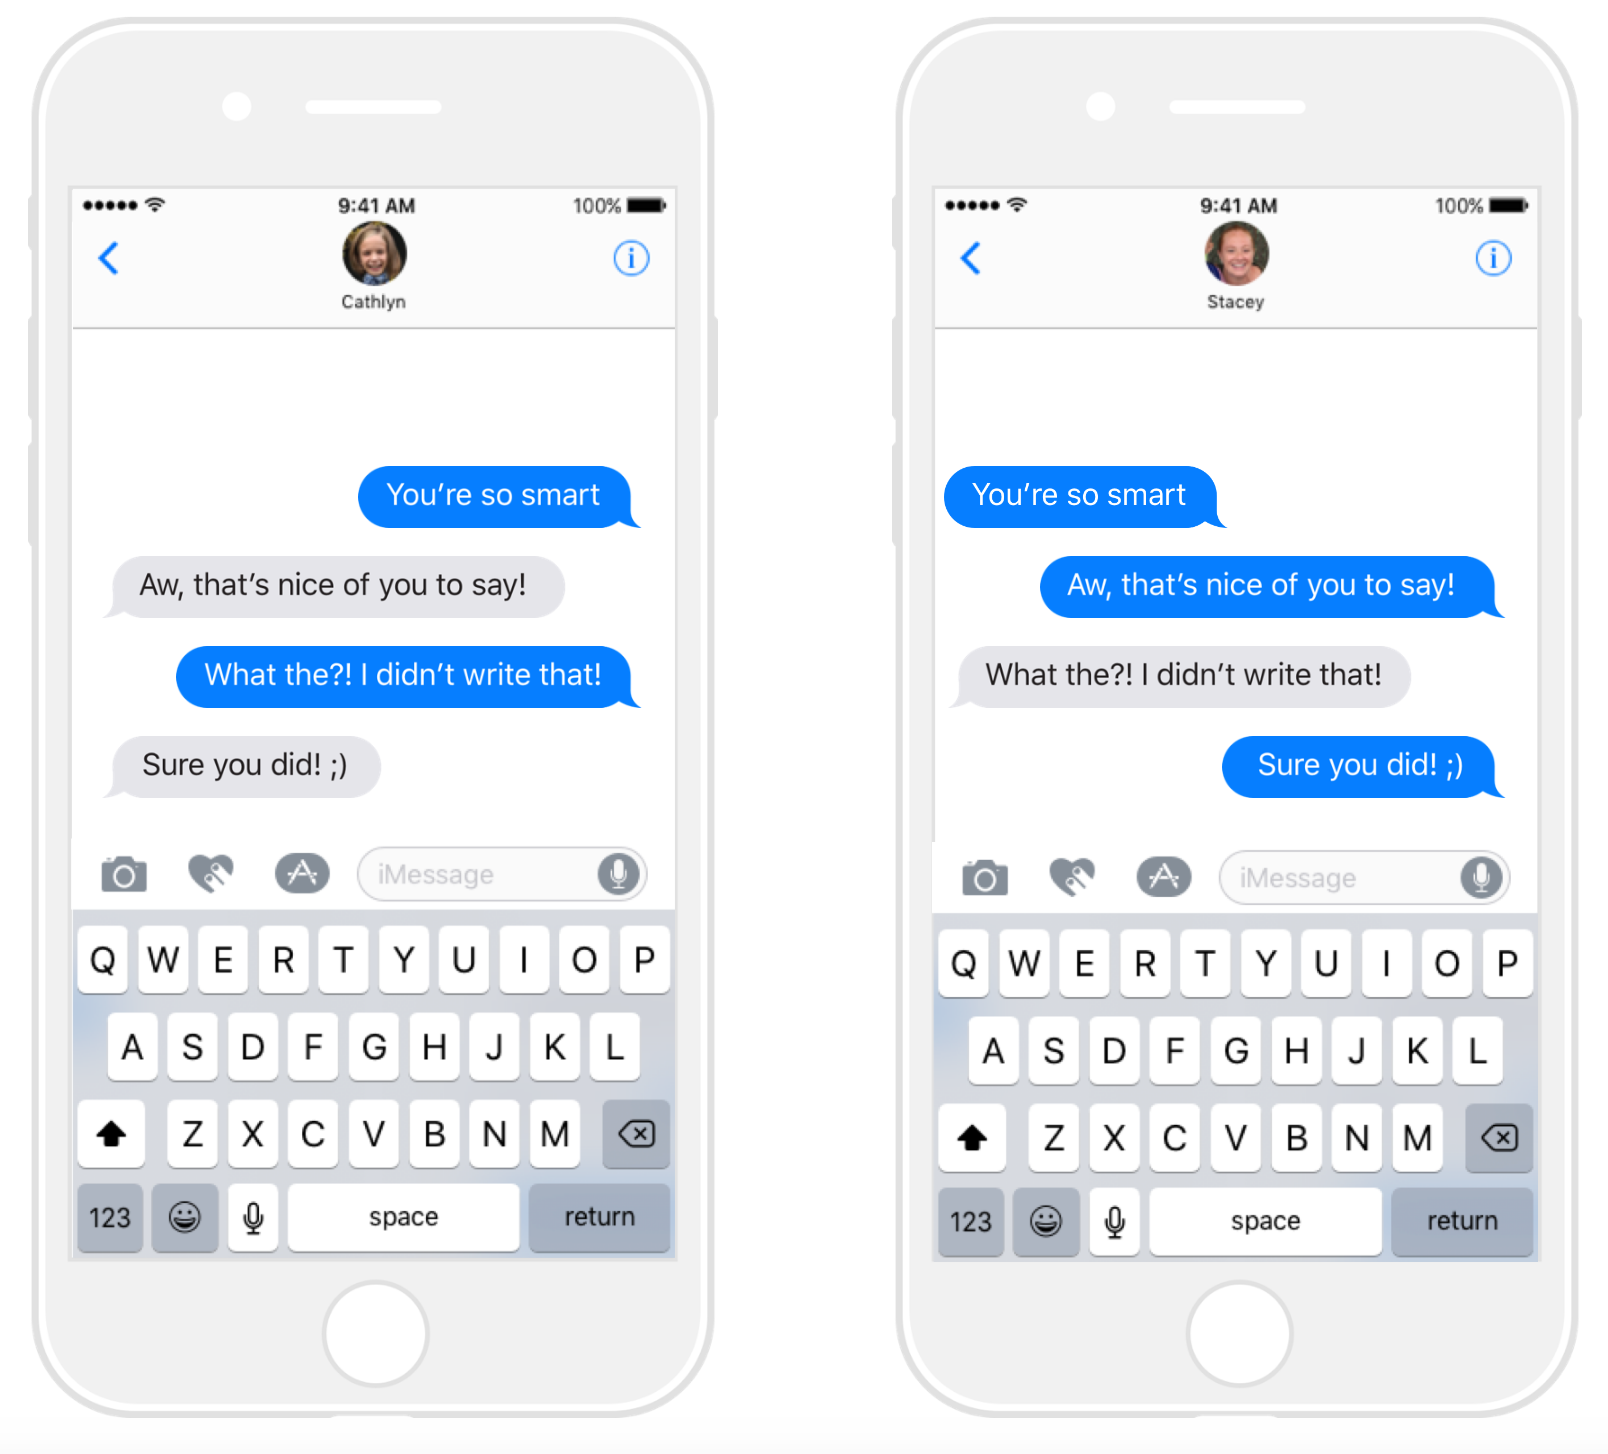 Bubbles Threatens Mimic Apple App Stickers Imessage For That An Pranking Pulling With Friends